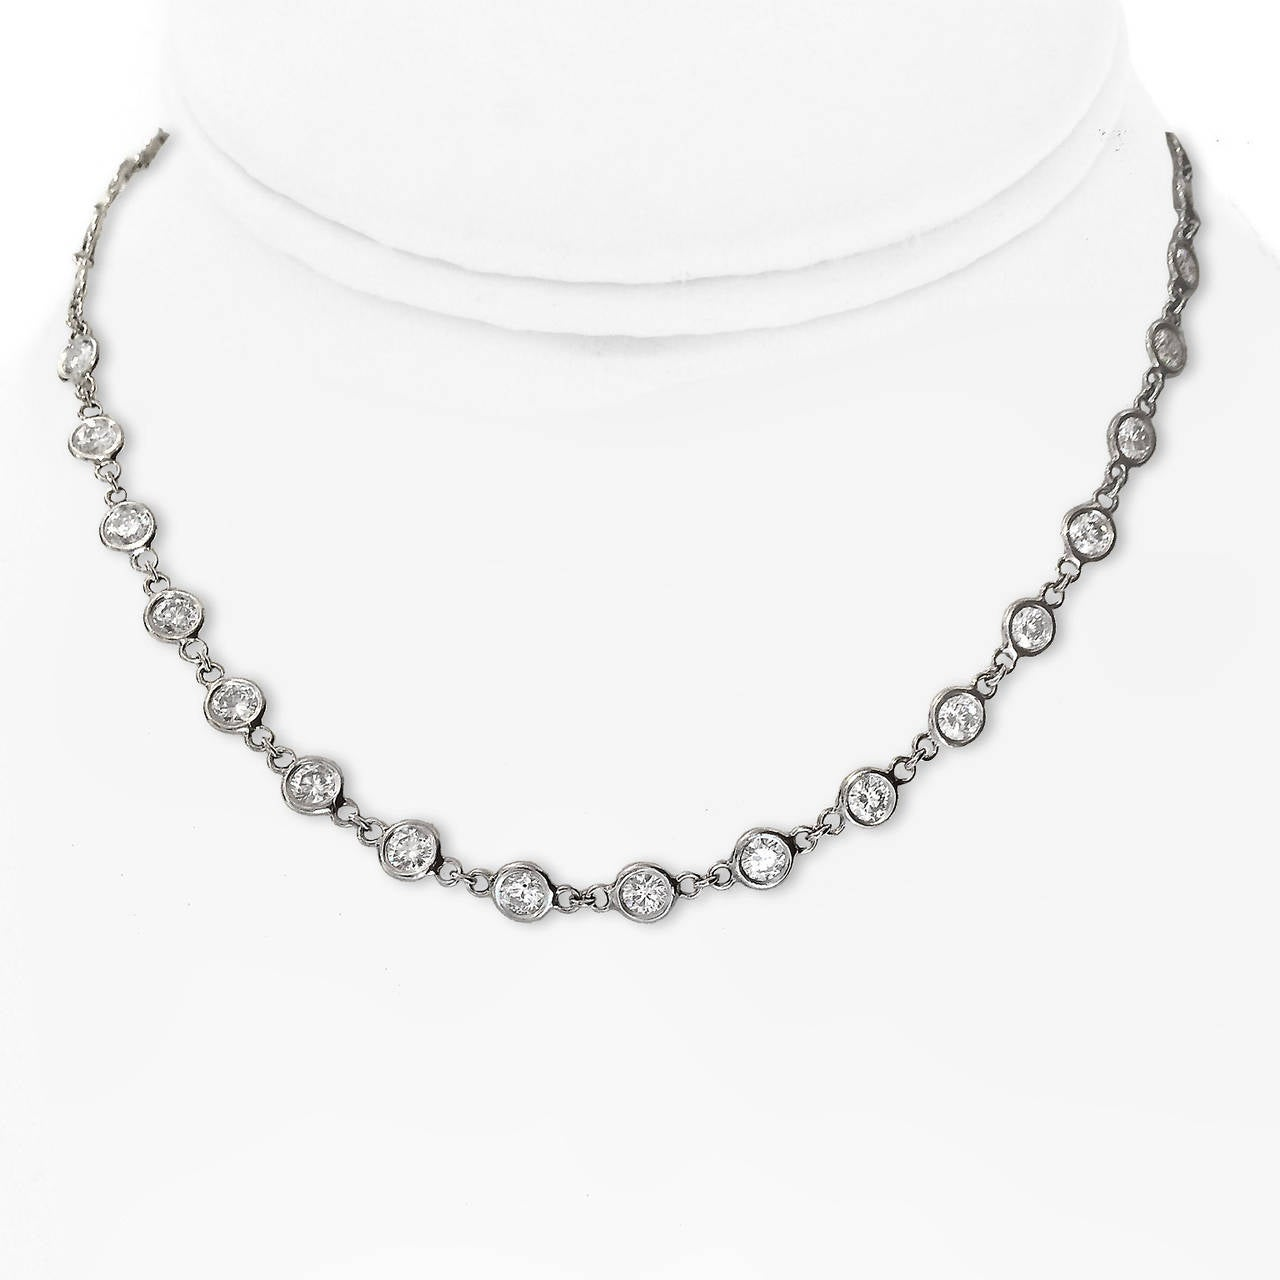 "Purely contemporary ... 39 round G color VS-VS2 grade diamonds, for a total of 7.77 carats, make this a WOW necklace. 16"" long."